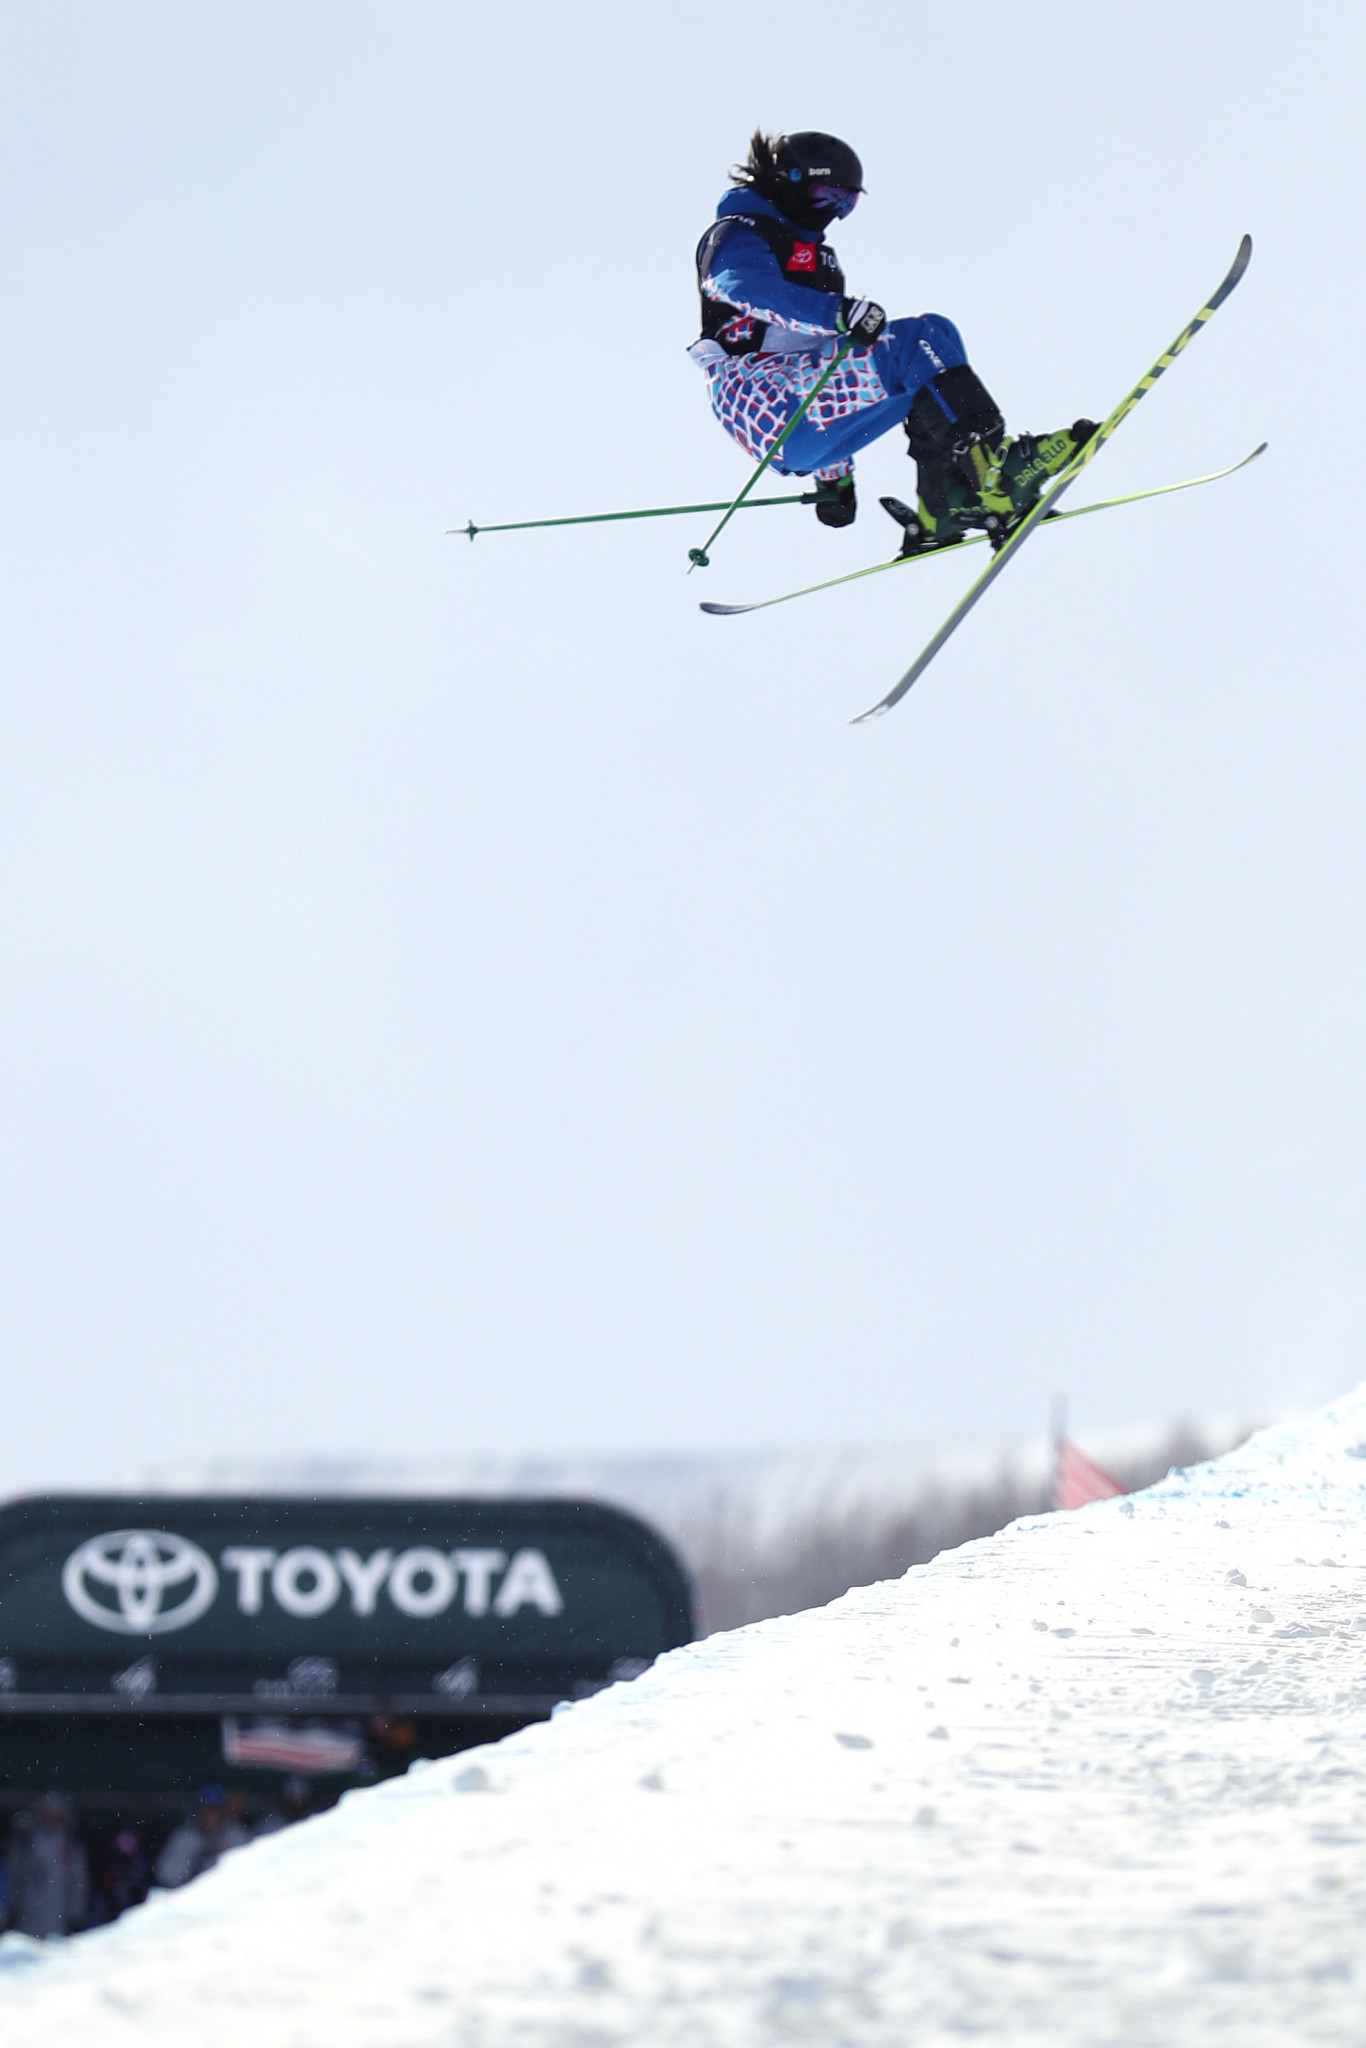 Chinese duo lead halfpipe qualification as FIS Freeski World Cup begins in Cardrona